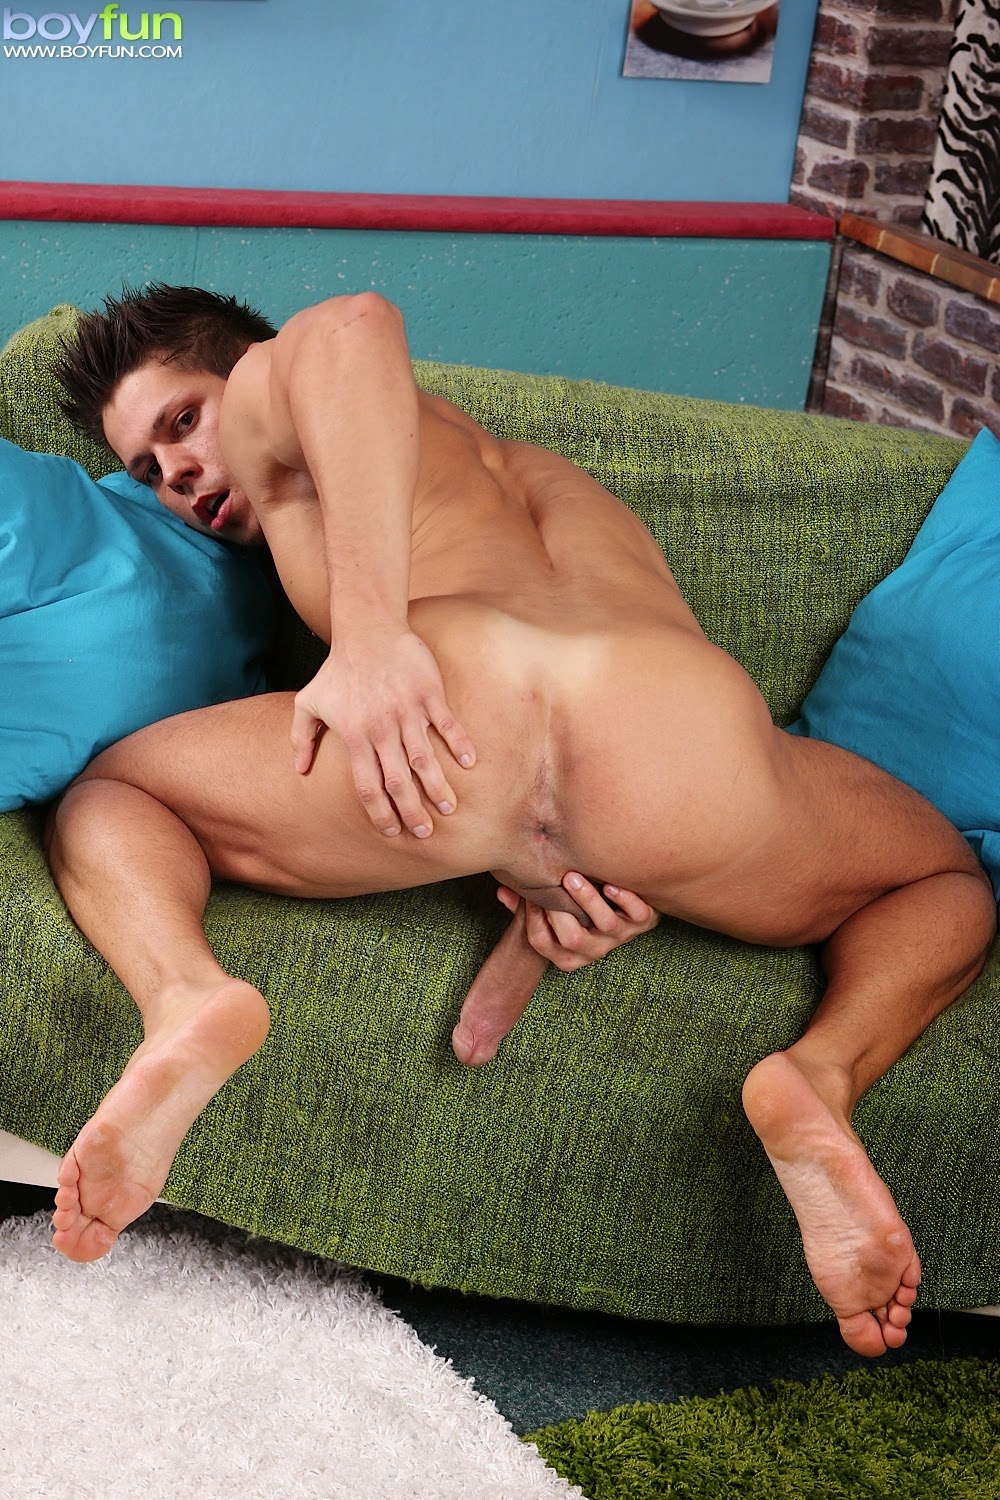 Gay Twink With Pink Hole Xxx Chris Jett Needs A Bit Of Sugar To Get His